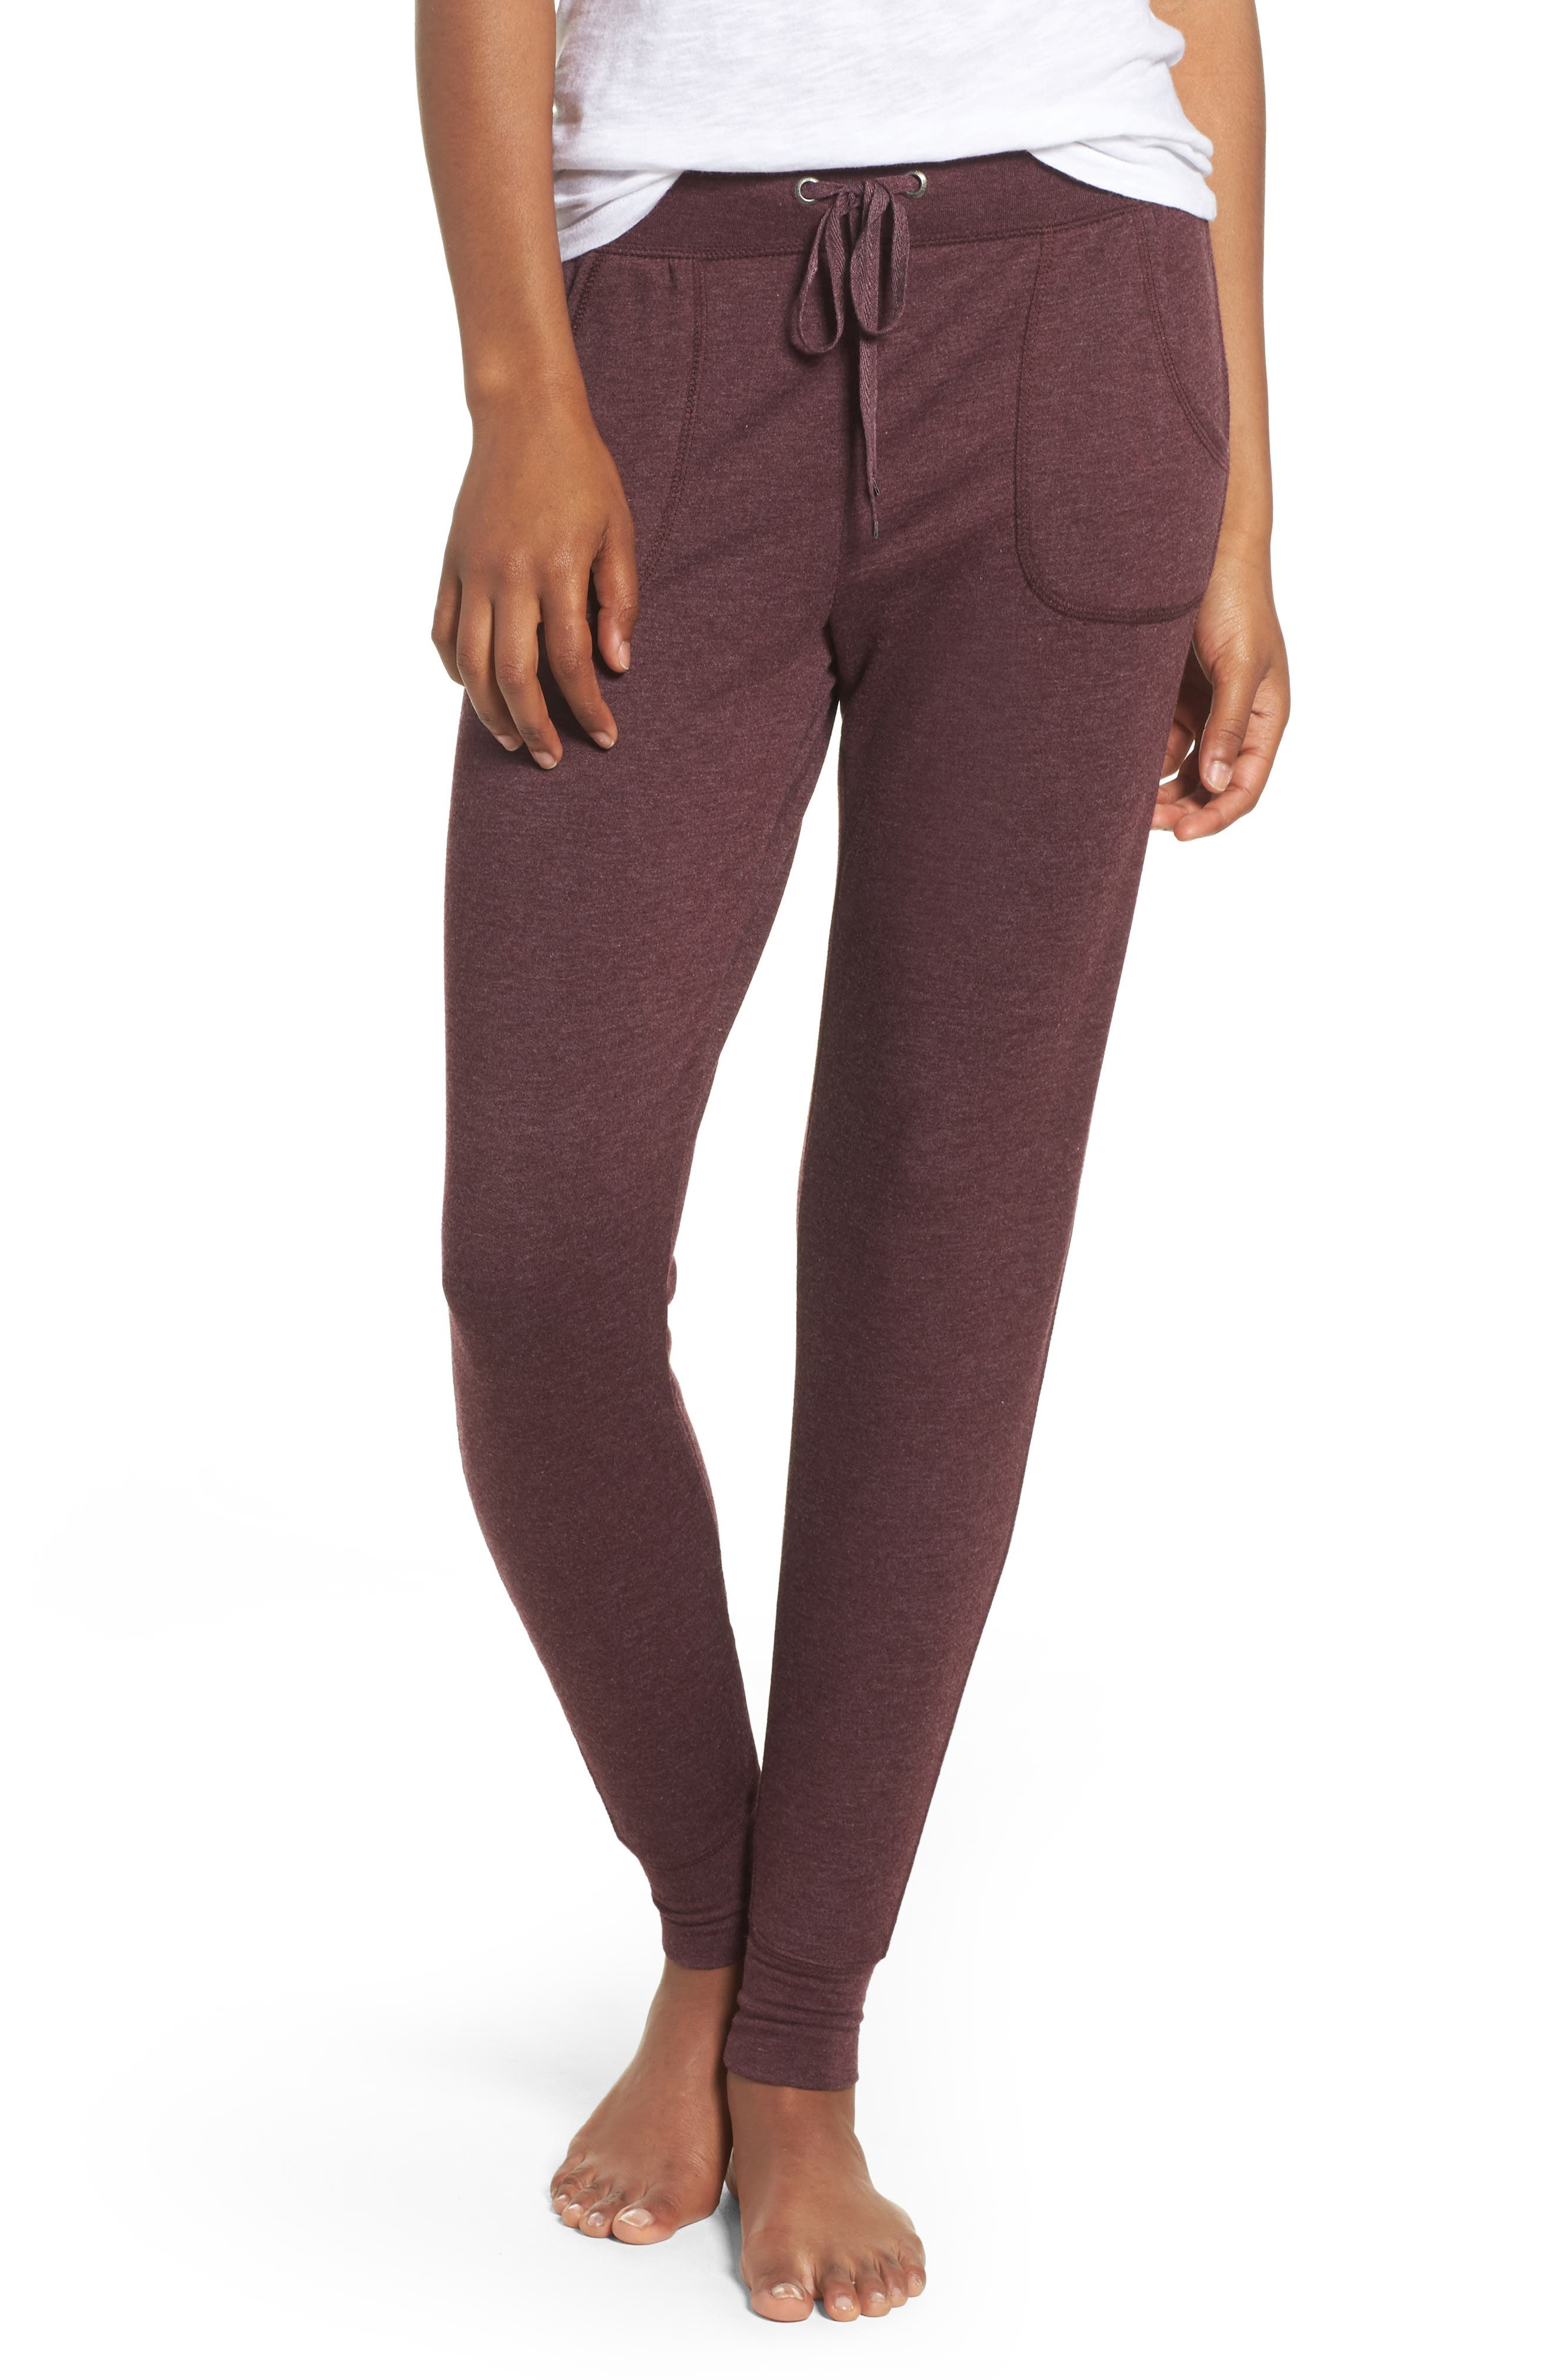 All About It Lounge Pants,                             Main thumbnail 4, color,